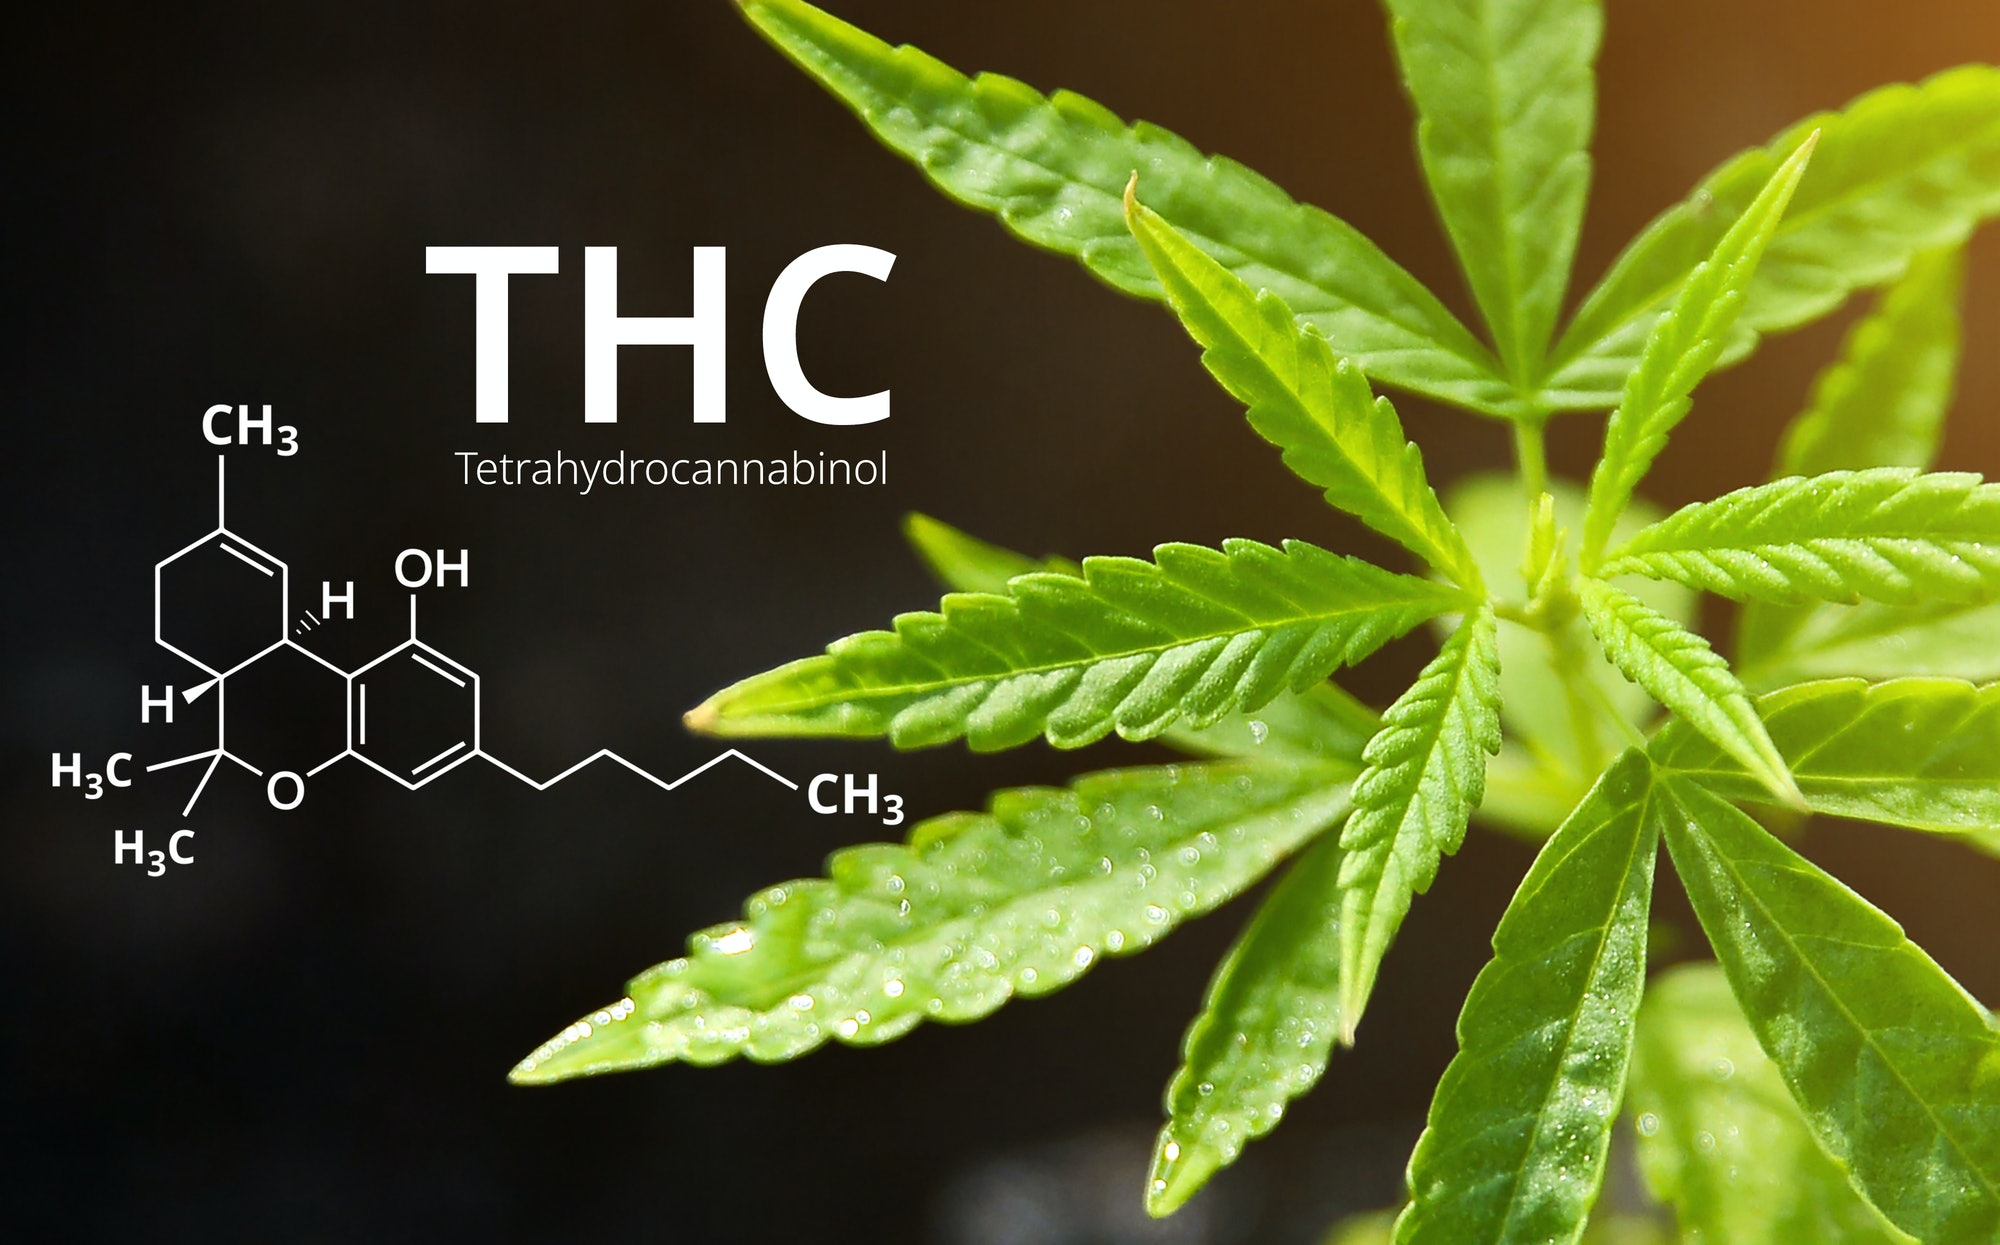 Tetrahydrocannabinol or THC molecule formula with Marijuana background, Cannabis sativa